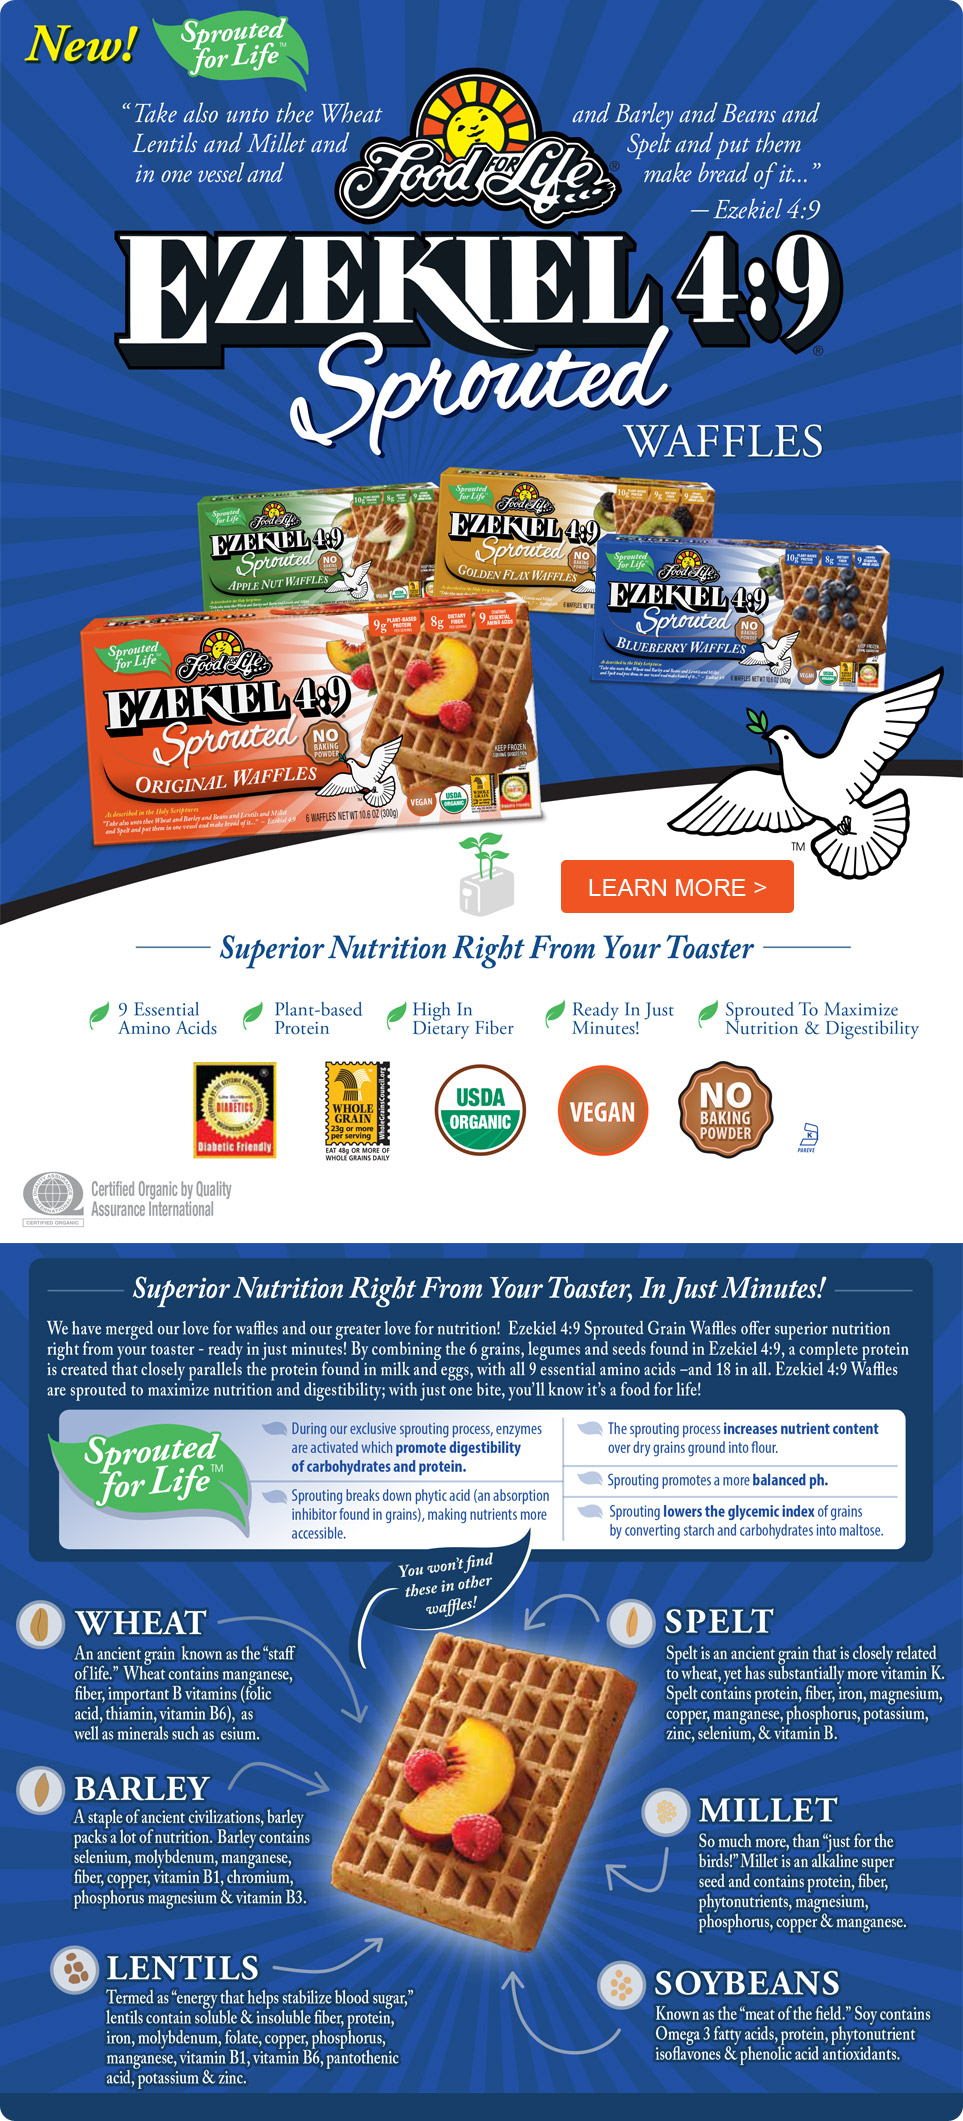 9 Sprouted Waffles - 4 Flavors - Original, Blueberry, Golden Flax, and Apple Nut. - Superior Nutrition Right From Your Toaster